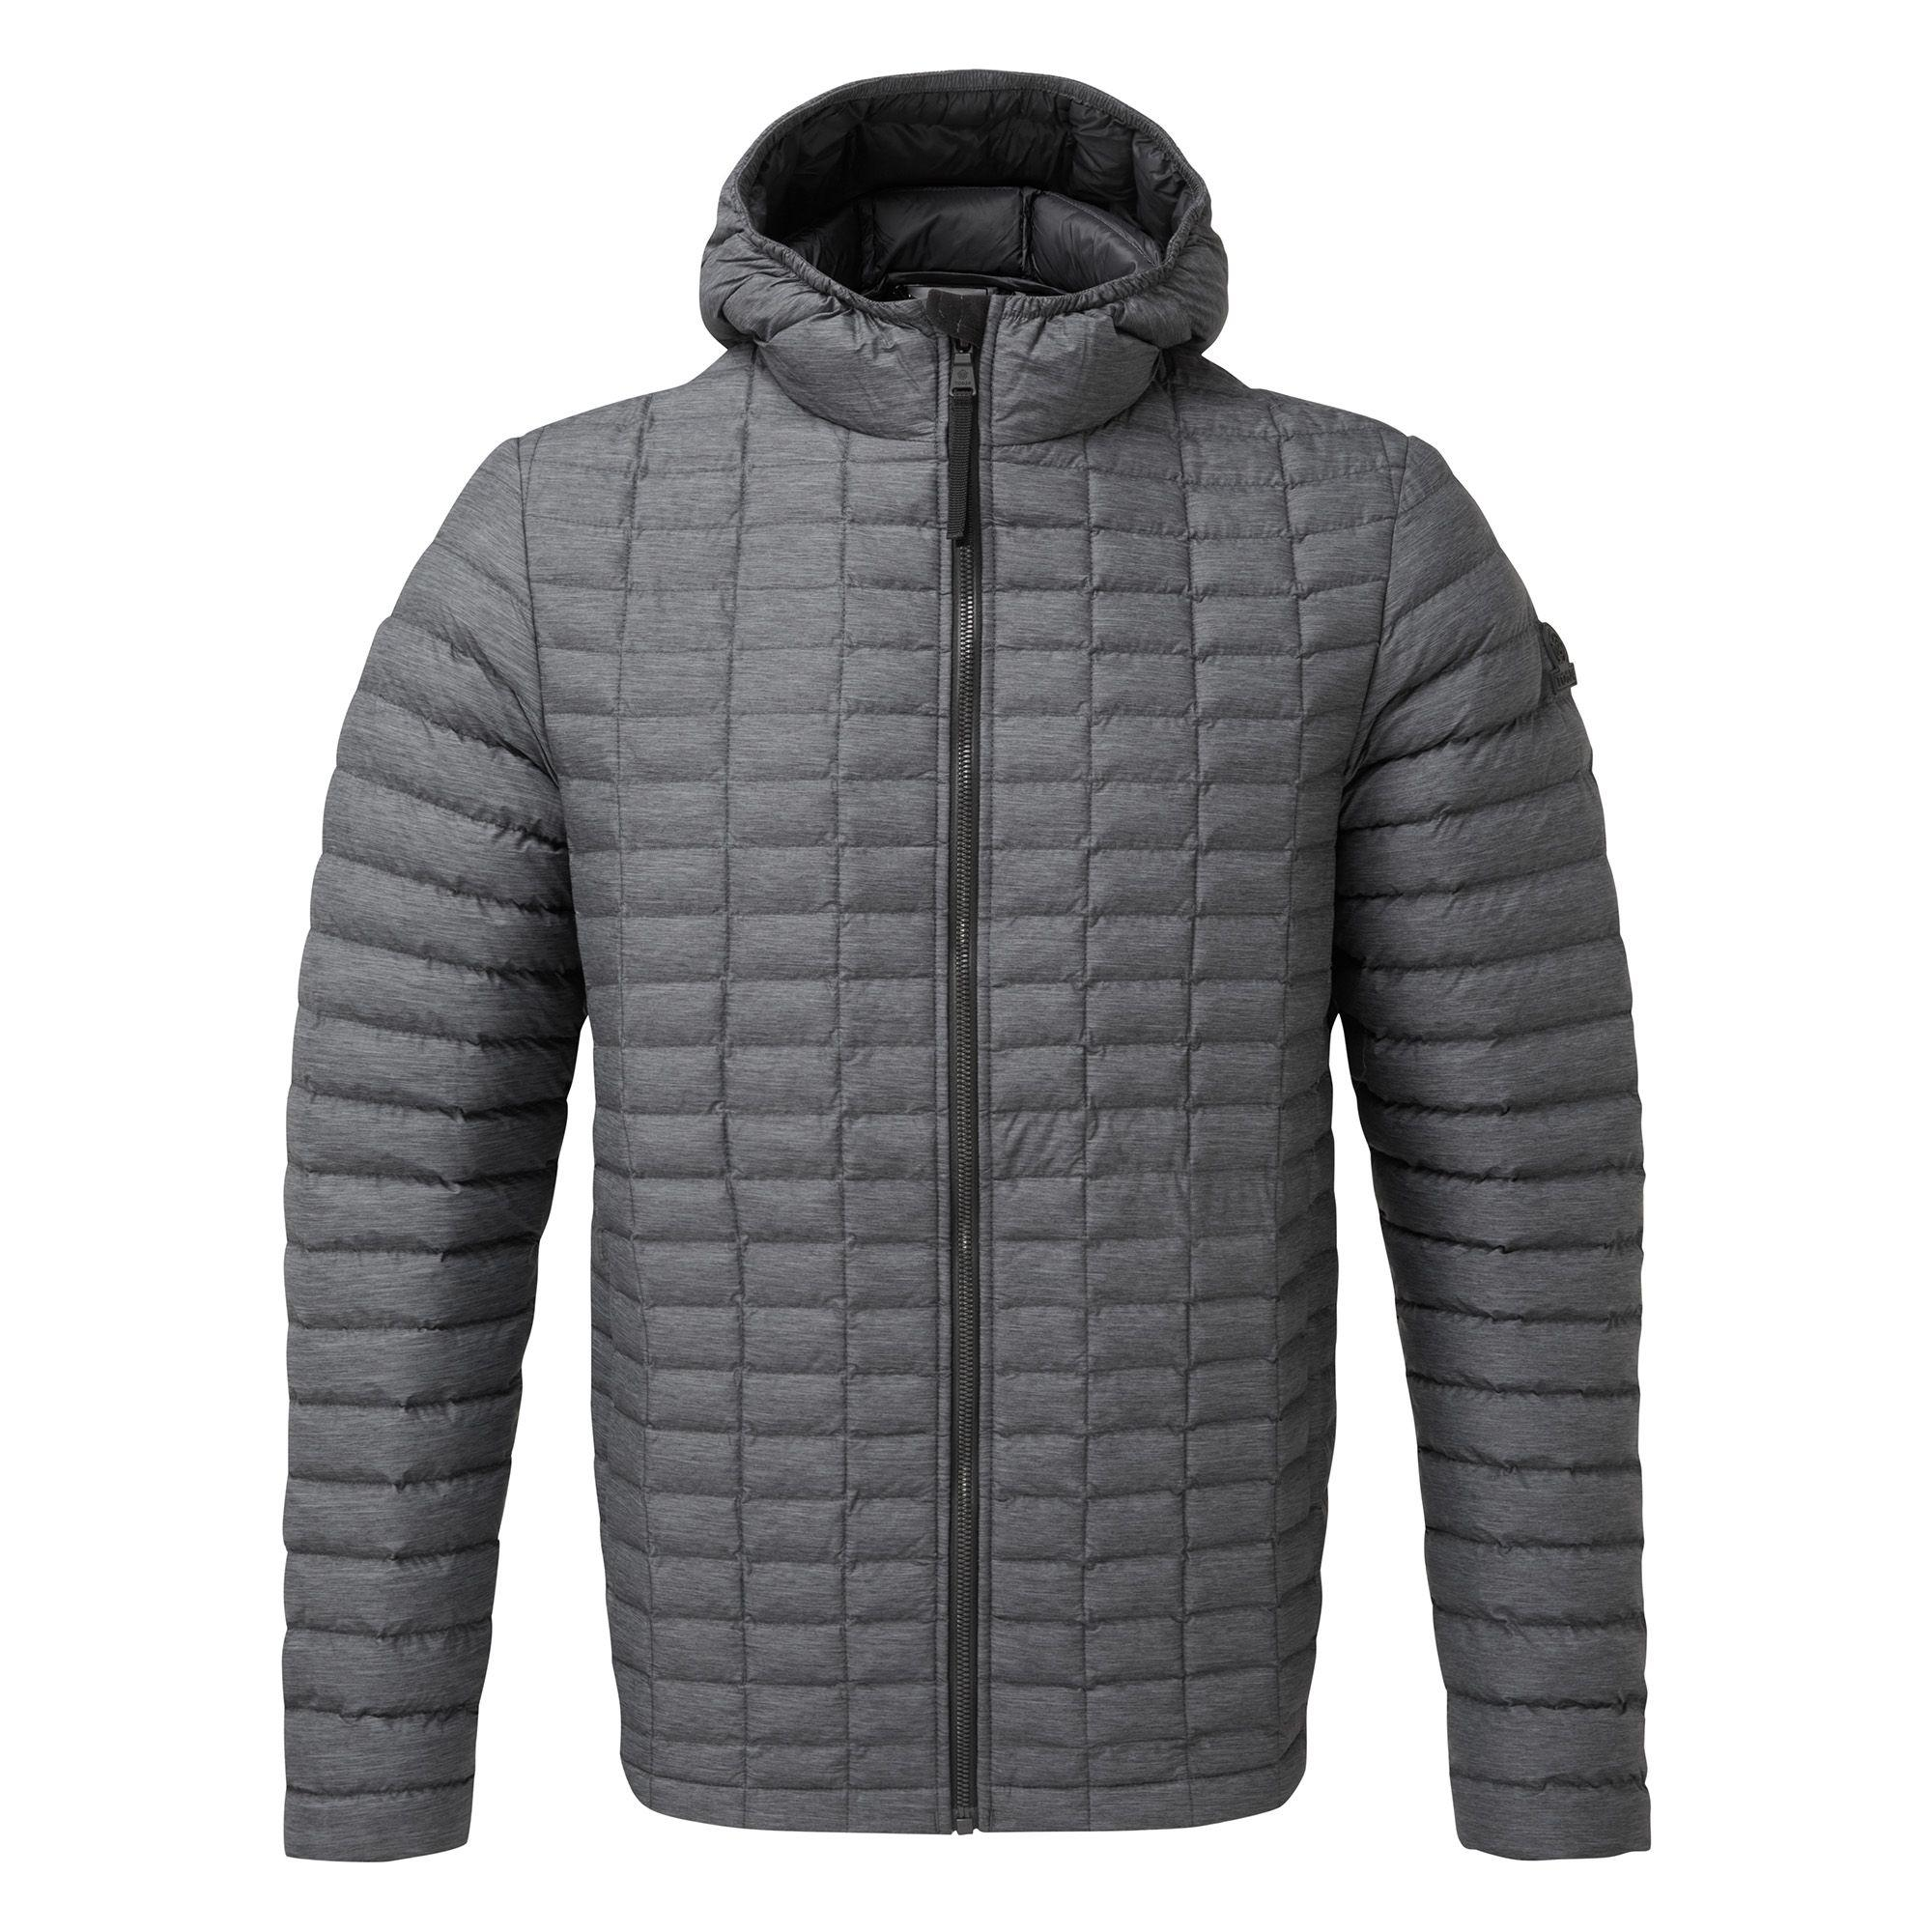 a619d1322 Tog 24 Dark Grey Marl Hewick Insulated Jacket in Gray for Men - Lyst